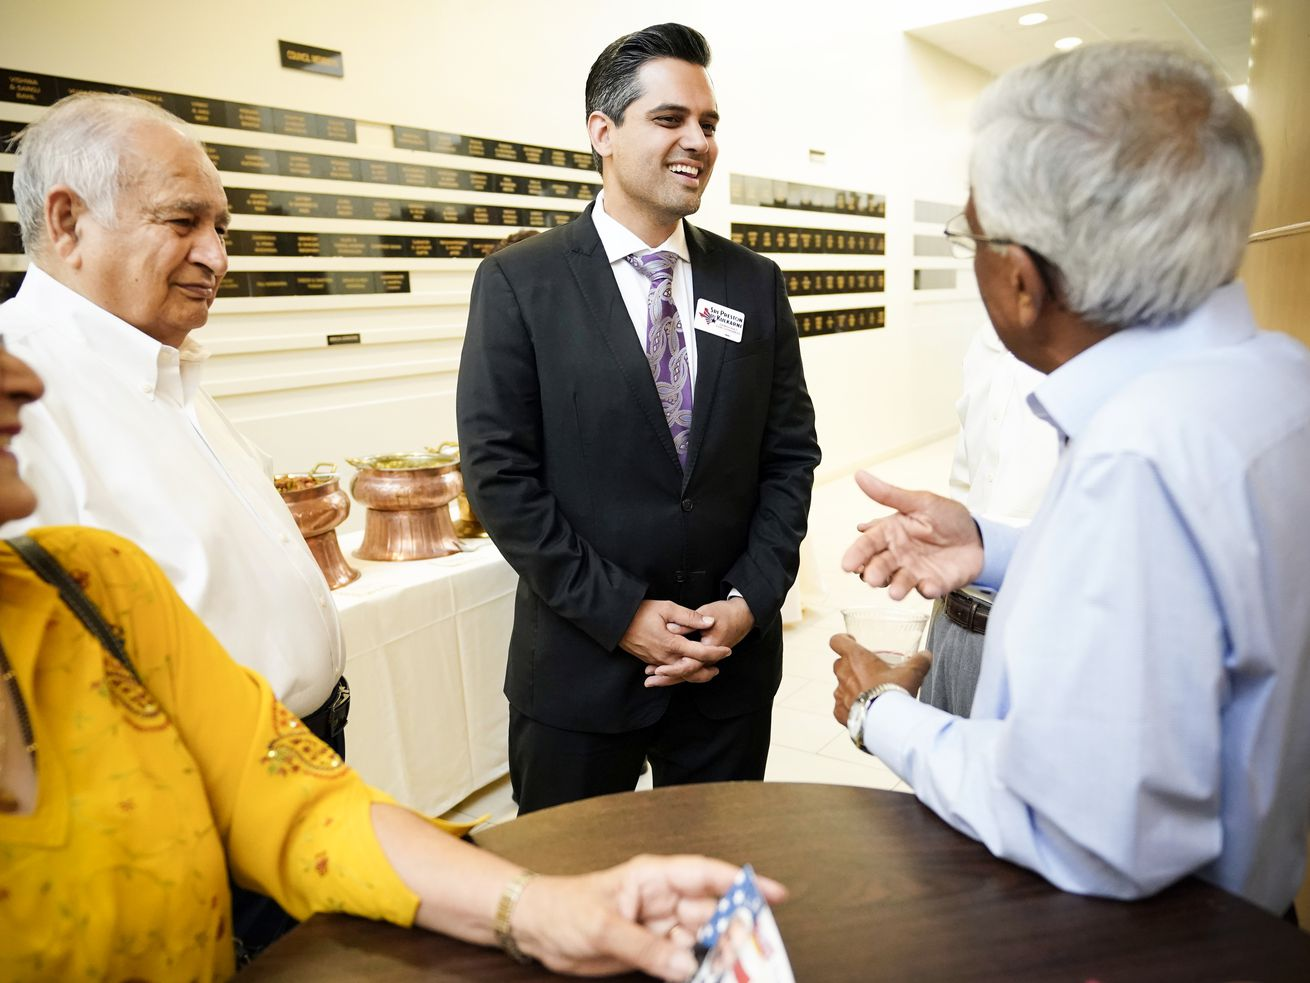 Democrat Congressional candidate Sri Kulkarni (center) listens to supporters at a fundraiser in Houston, Texas, July 29, 2018.